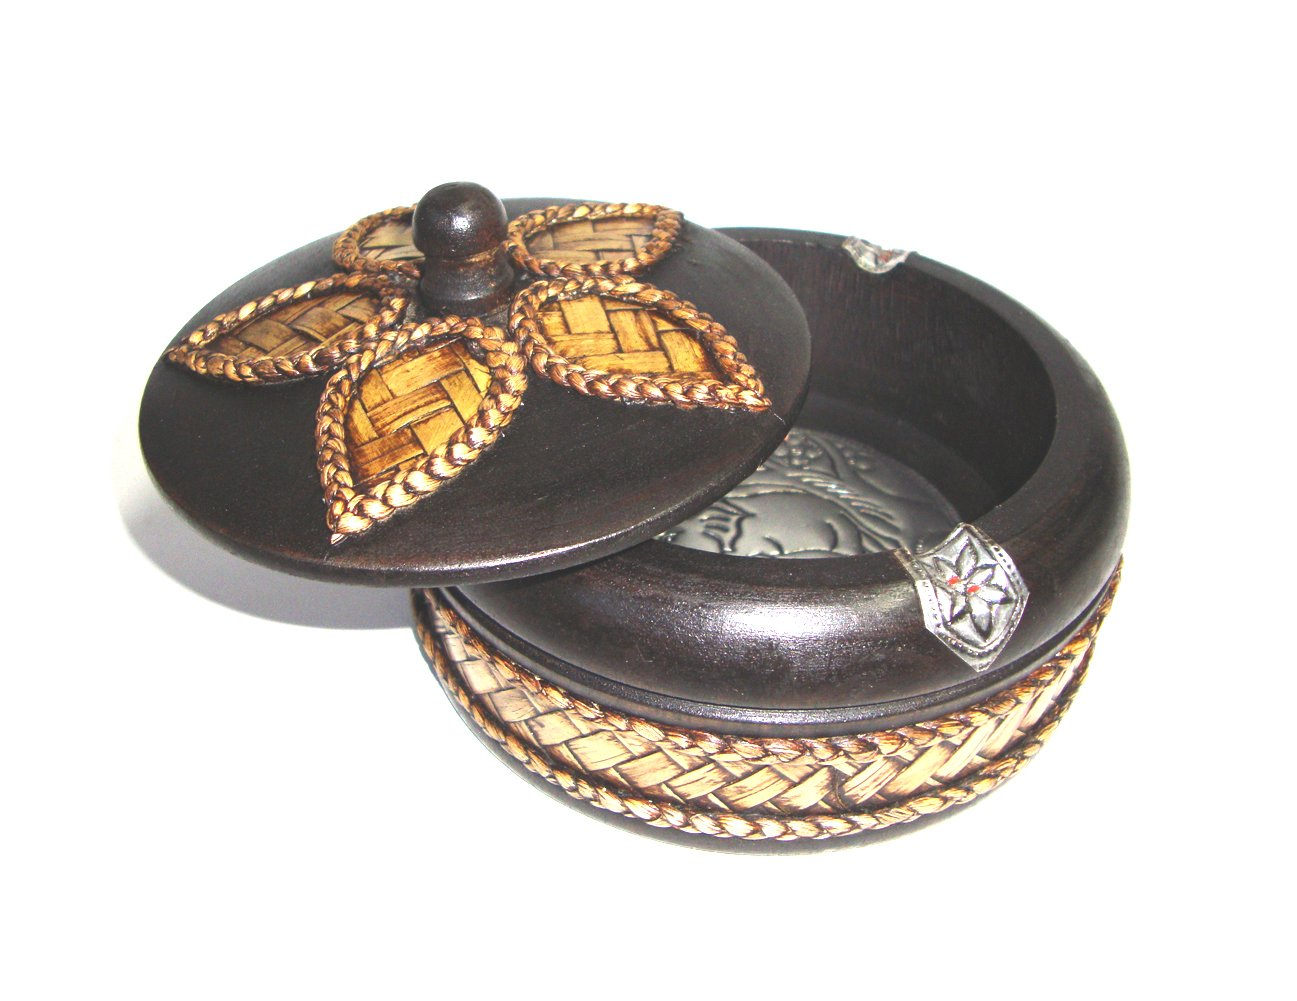 Ashtray Thai Carved Handicraft Round Mango Wood with Elephant Silver Plated and Covered By Bamboo with Lid Wooden Ashtray